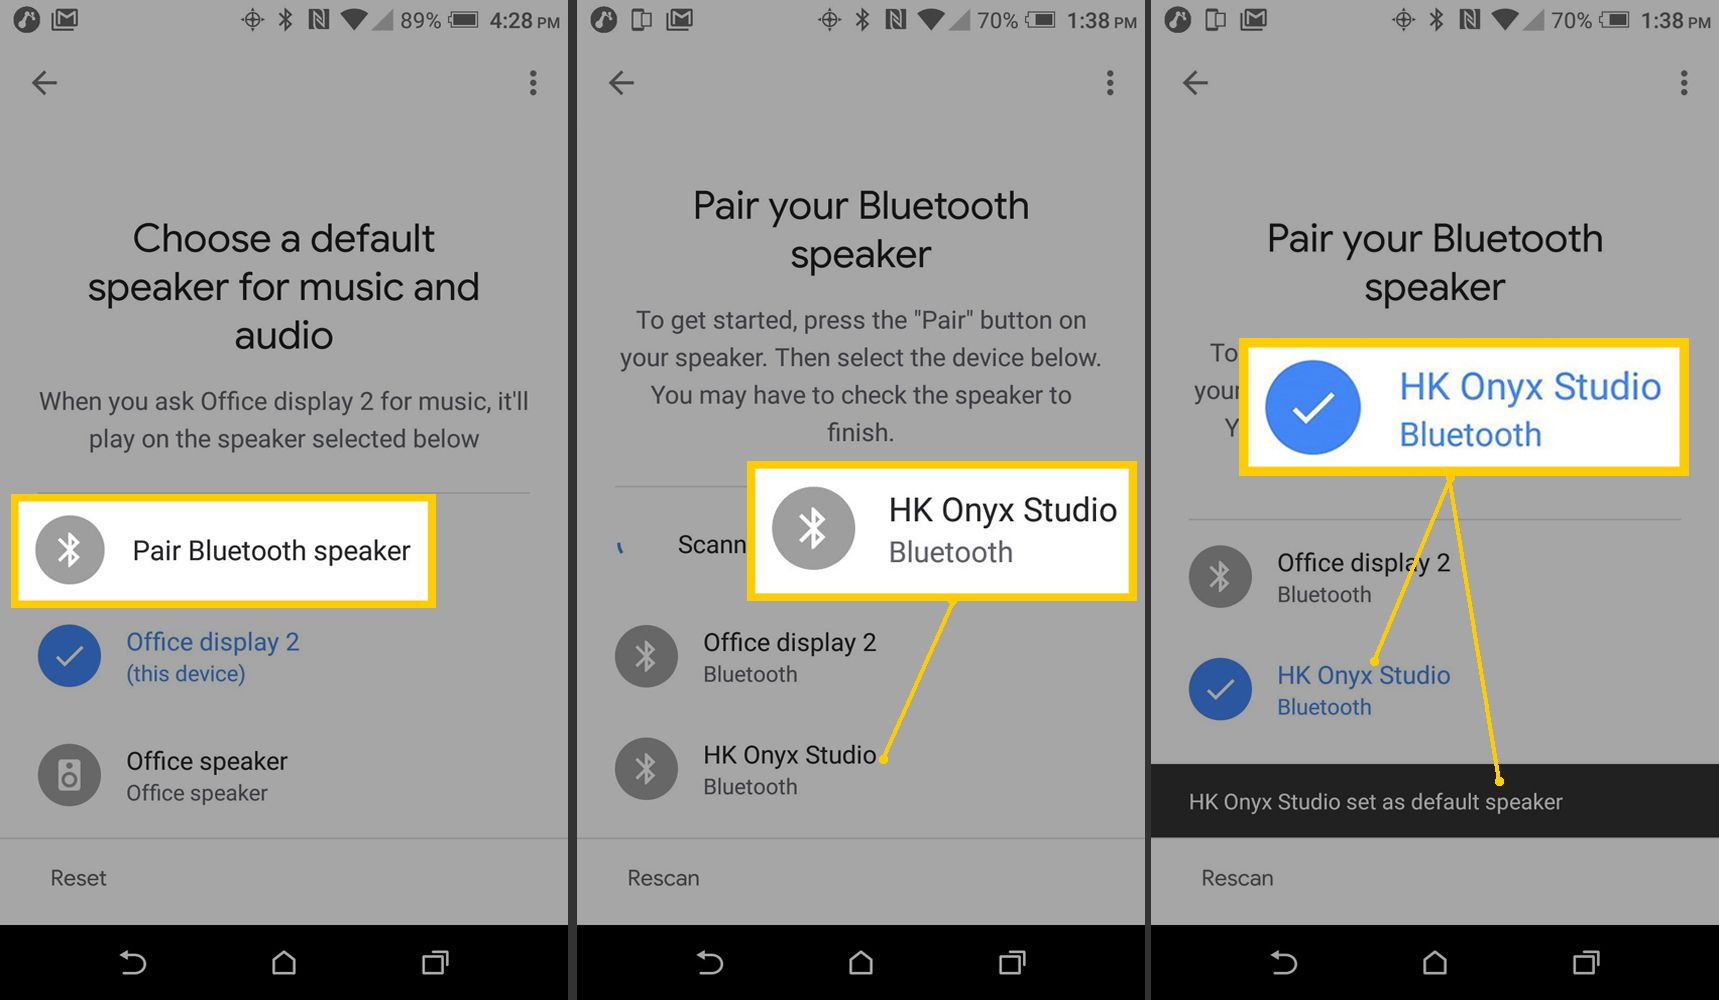 Screenshots on Android of Google Home App choosing and pairing Bluetooth speaker.